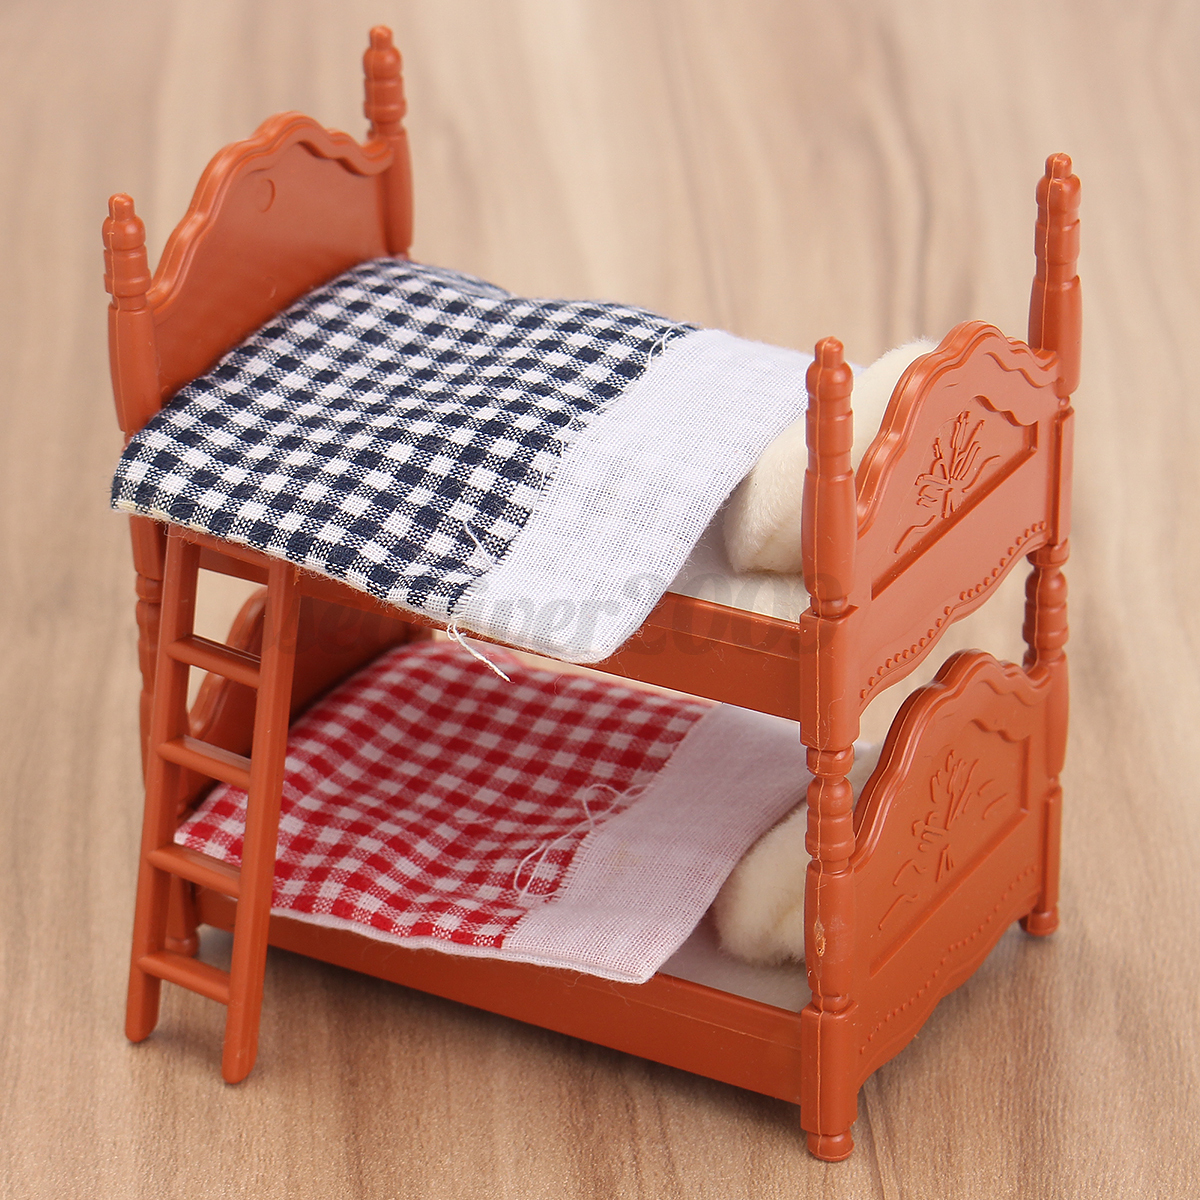 1 12 Scale Dollhouse Miniature Furniture Plastic Bunk Bed Bedroom Acessories Ebay